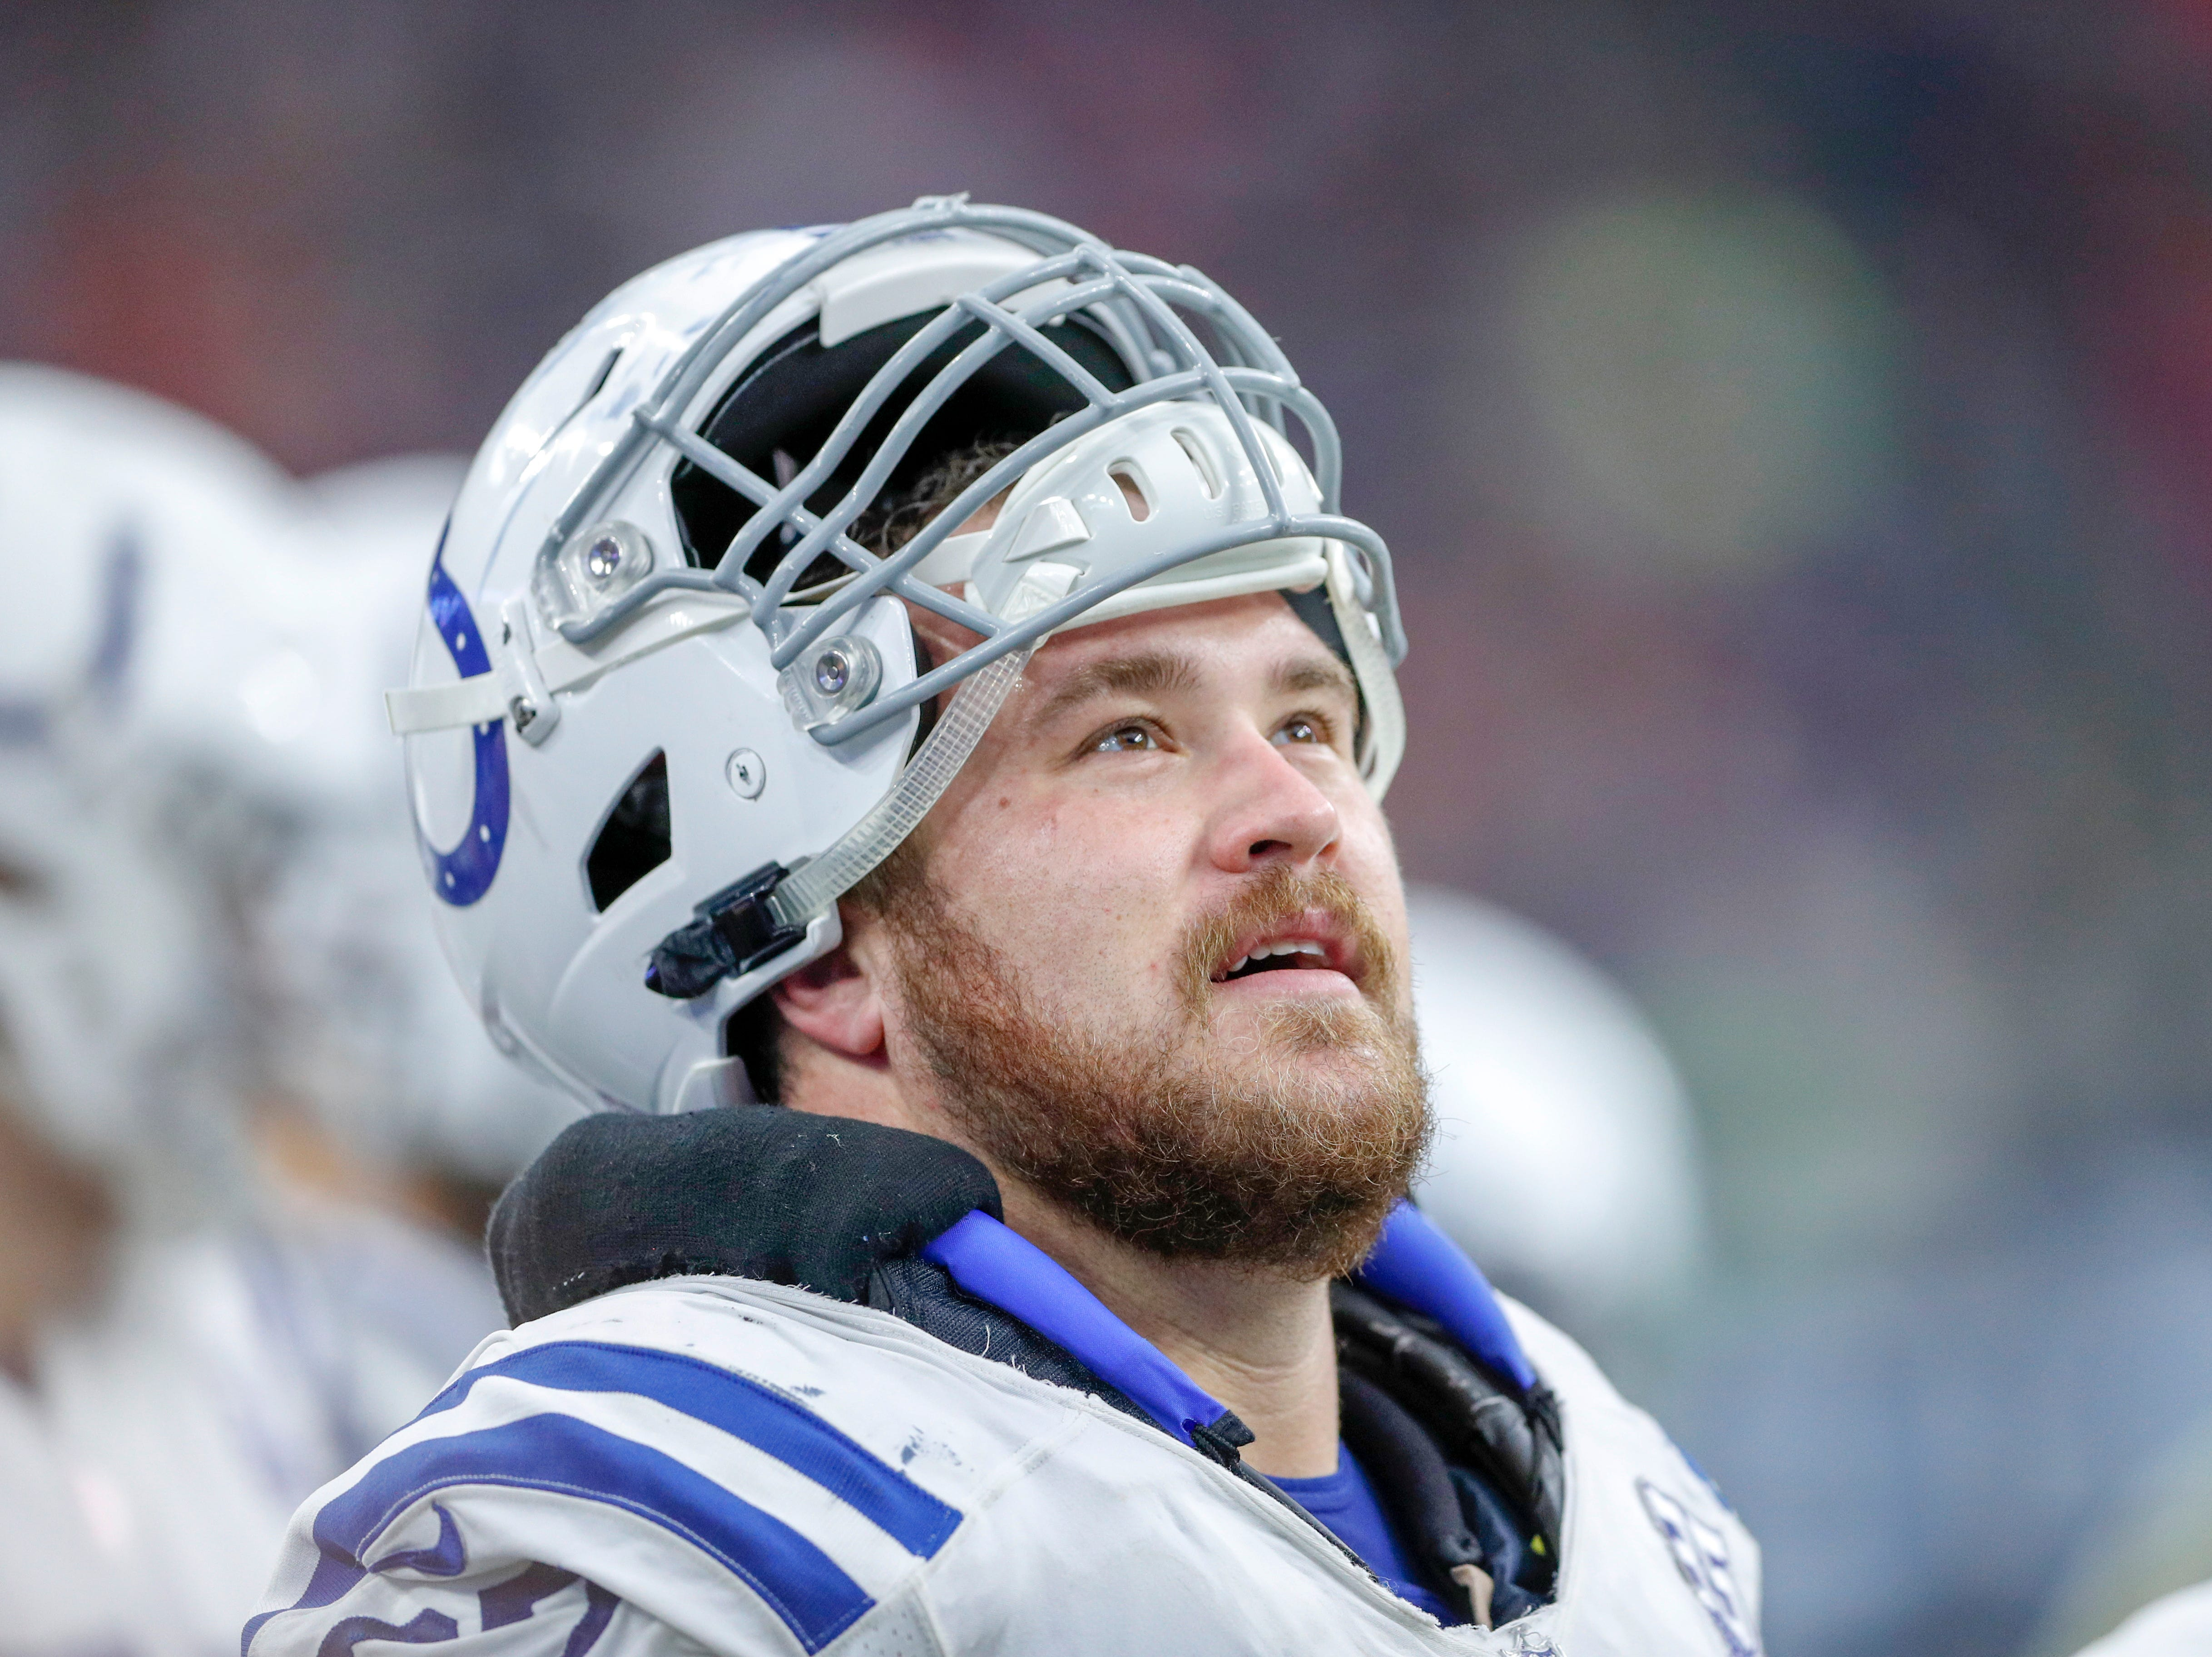 Indianapolis Colts offensive guard Evan Boehm (67) checks the scoreboard during the game against the Houston Texans in the third quarter at NRG Stadium in Houston on Sunday, Dec. 9, 2018.